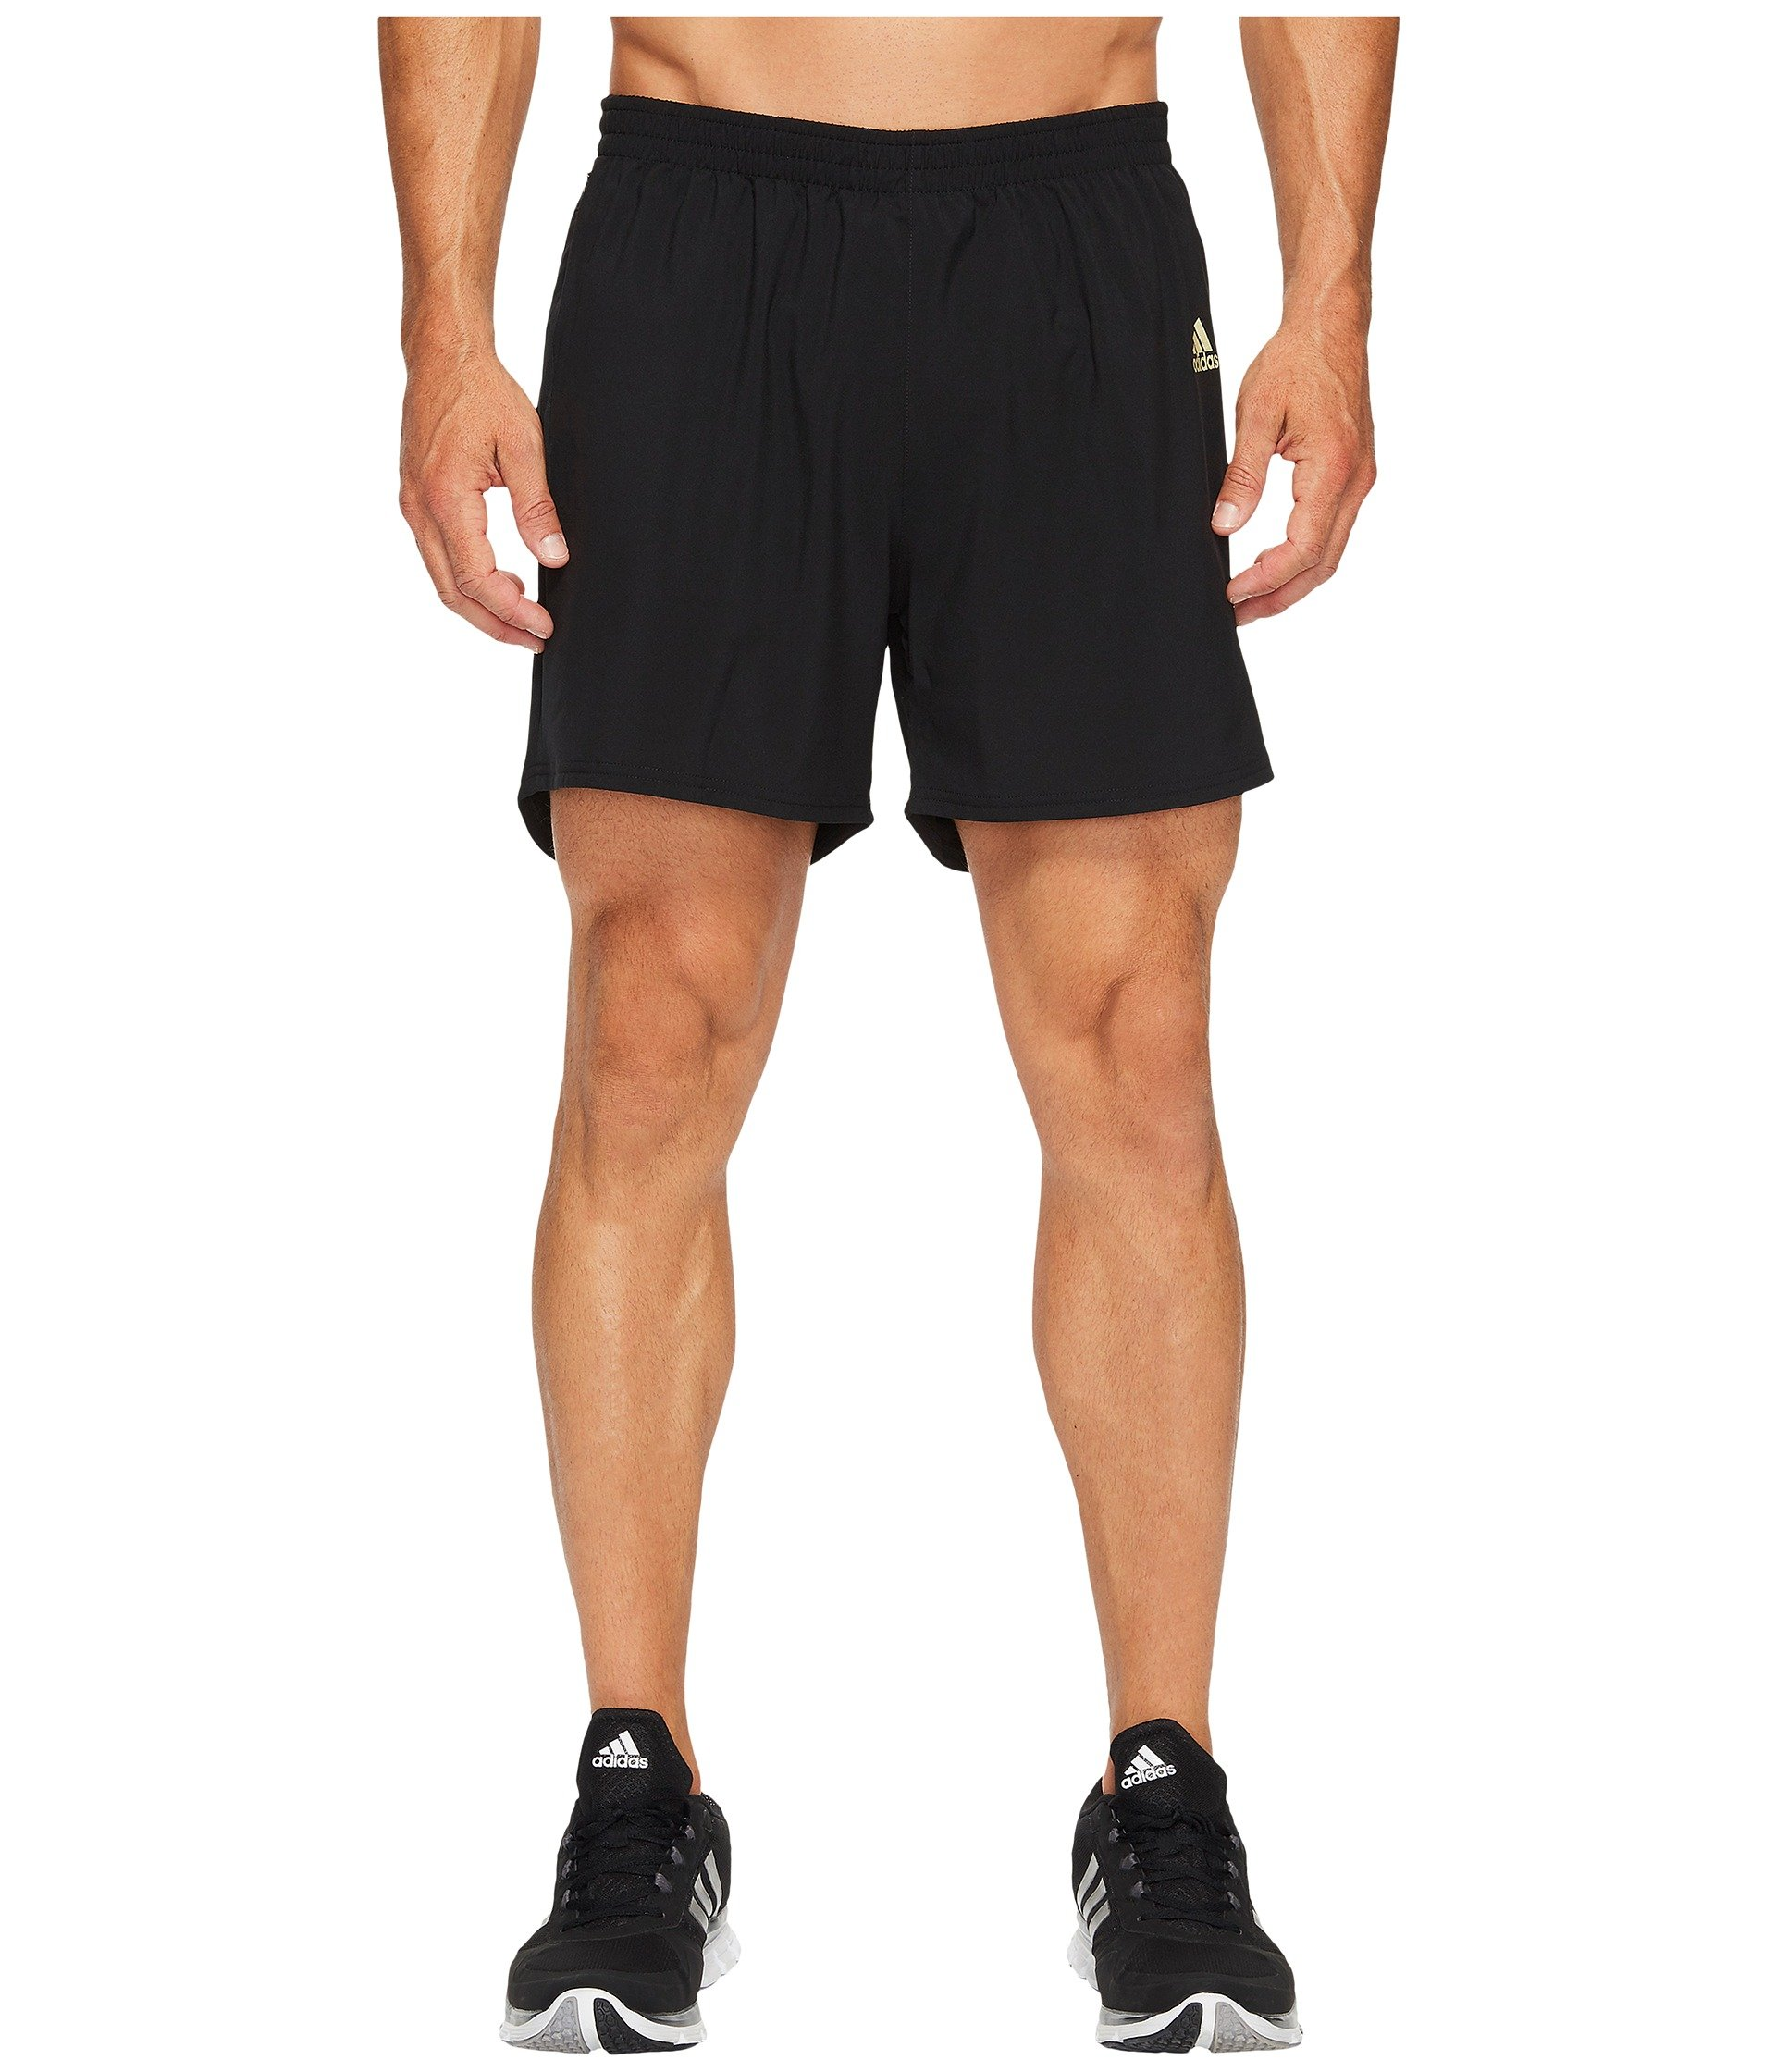 adidas Men's Running Response Shorts, Black/Gold Metallic, Large 7''